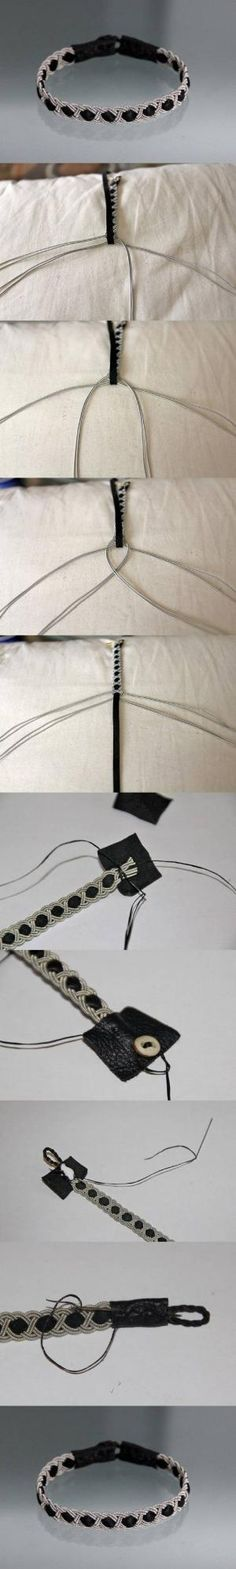 How to make Cute Rope Wristband DIY tutorial instructions, How to, how to do, diy instructions, crafts, do it yourself, diy website, art pro by Mary Smith fSesz